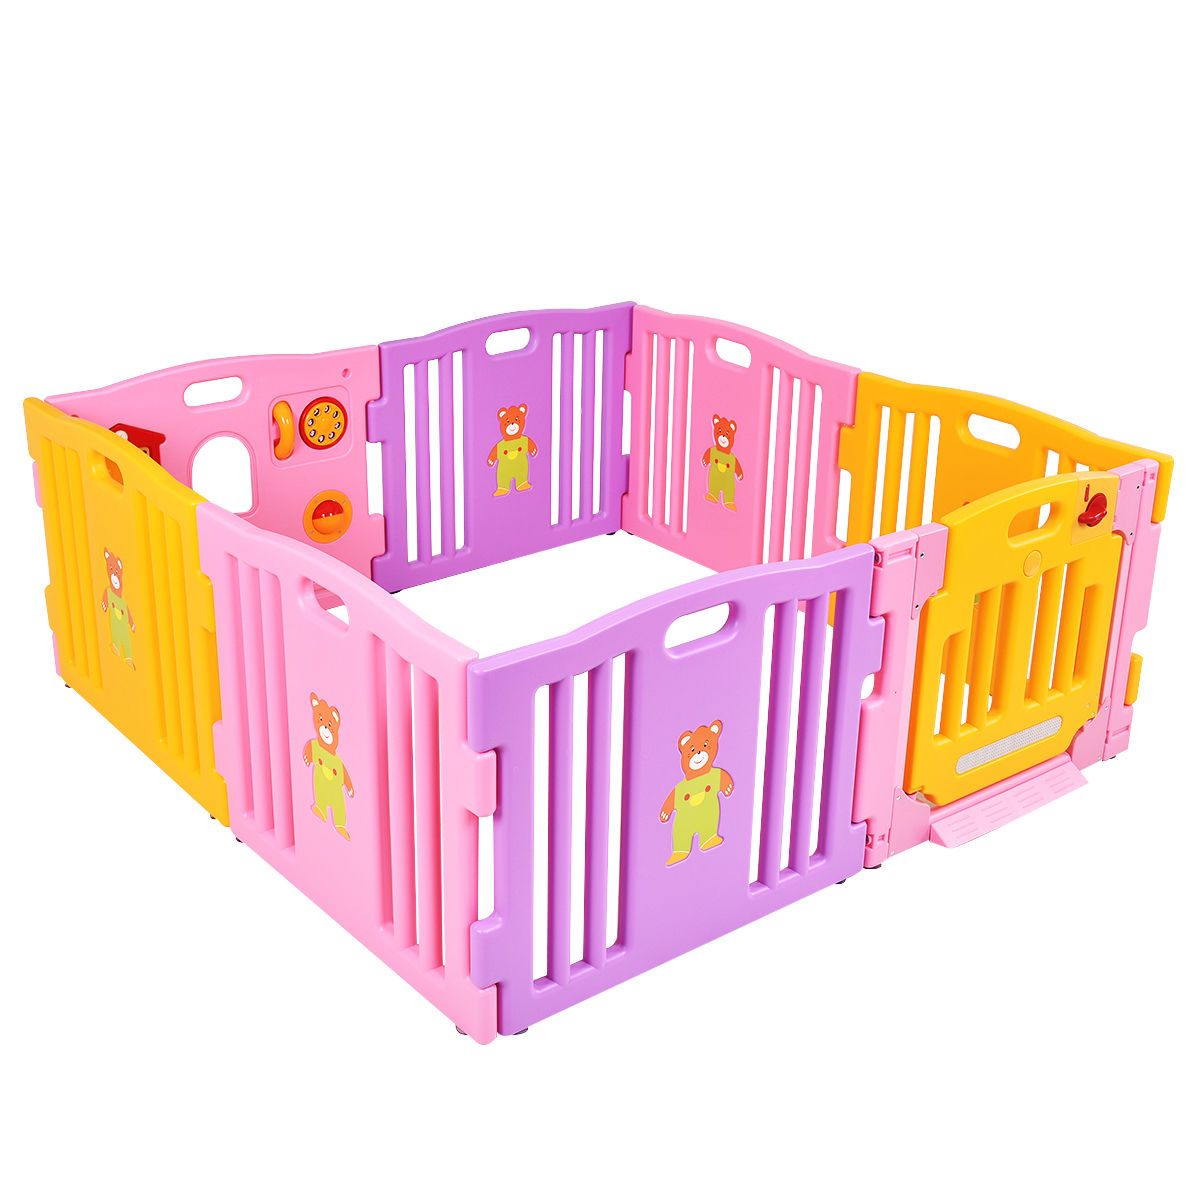 Costway Pink 8 Panel Baby Playpen Kids Safety Play Center Yard Home Indoor Outdoor Pen by Costway